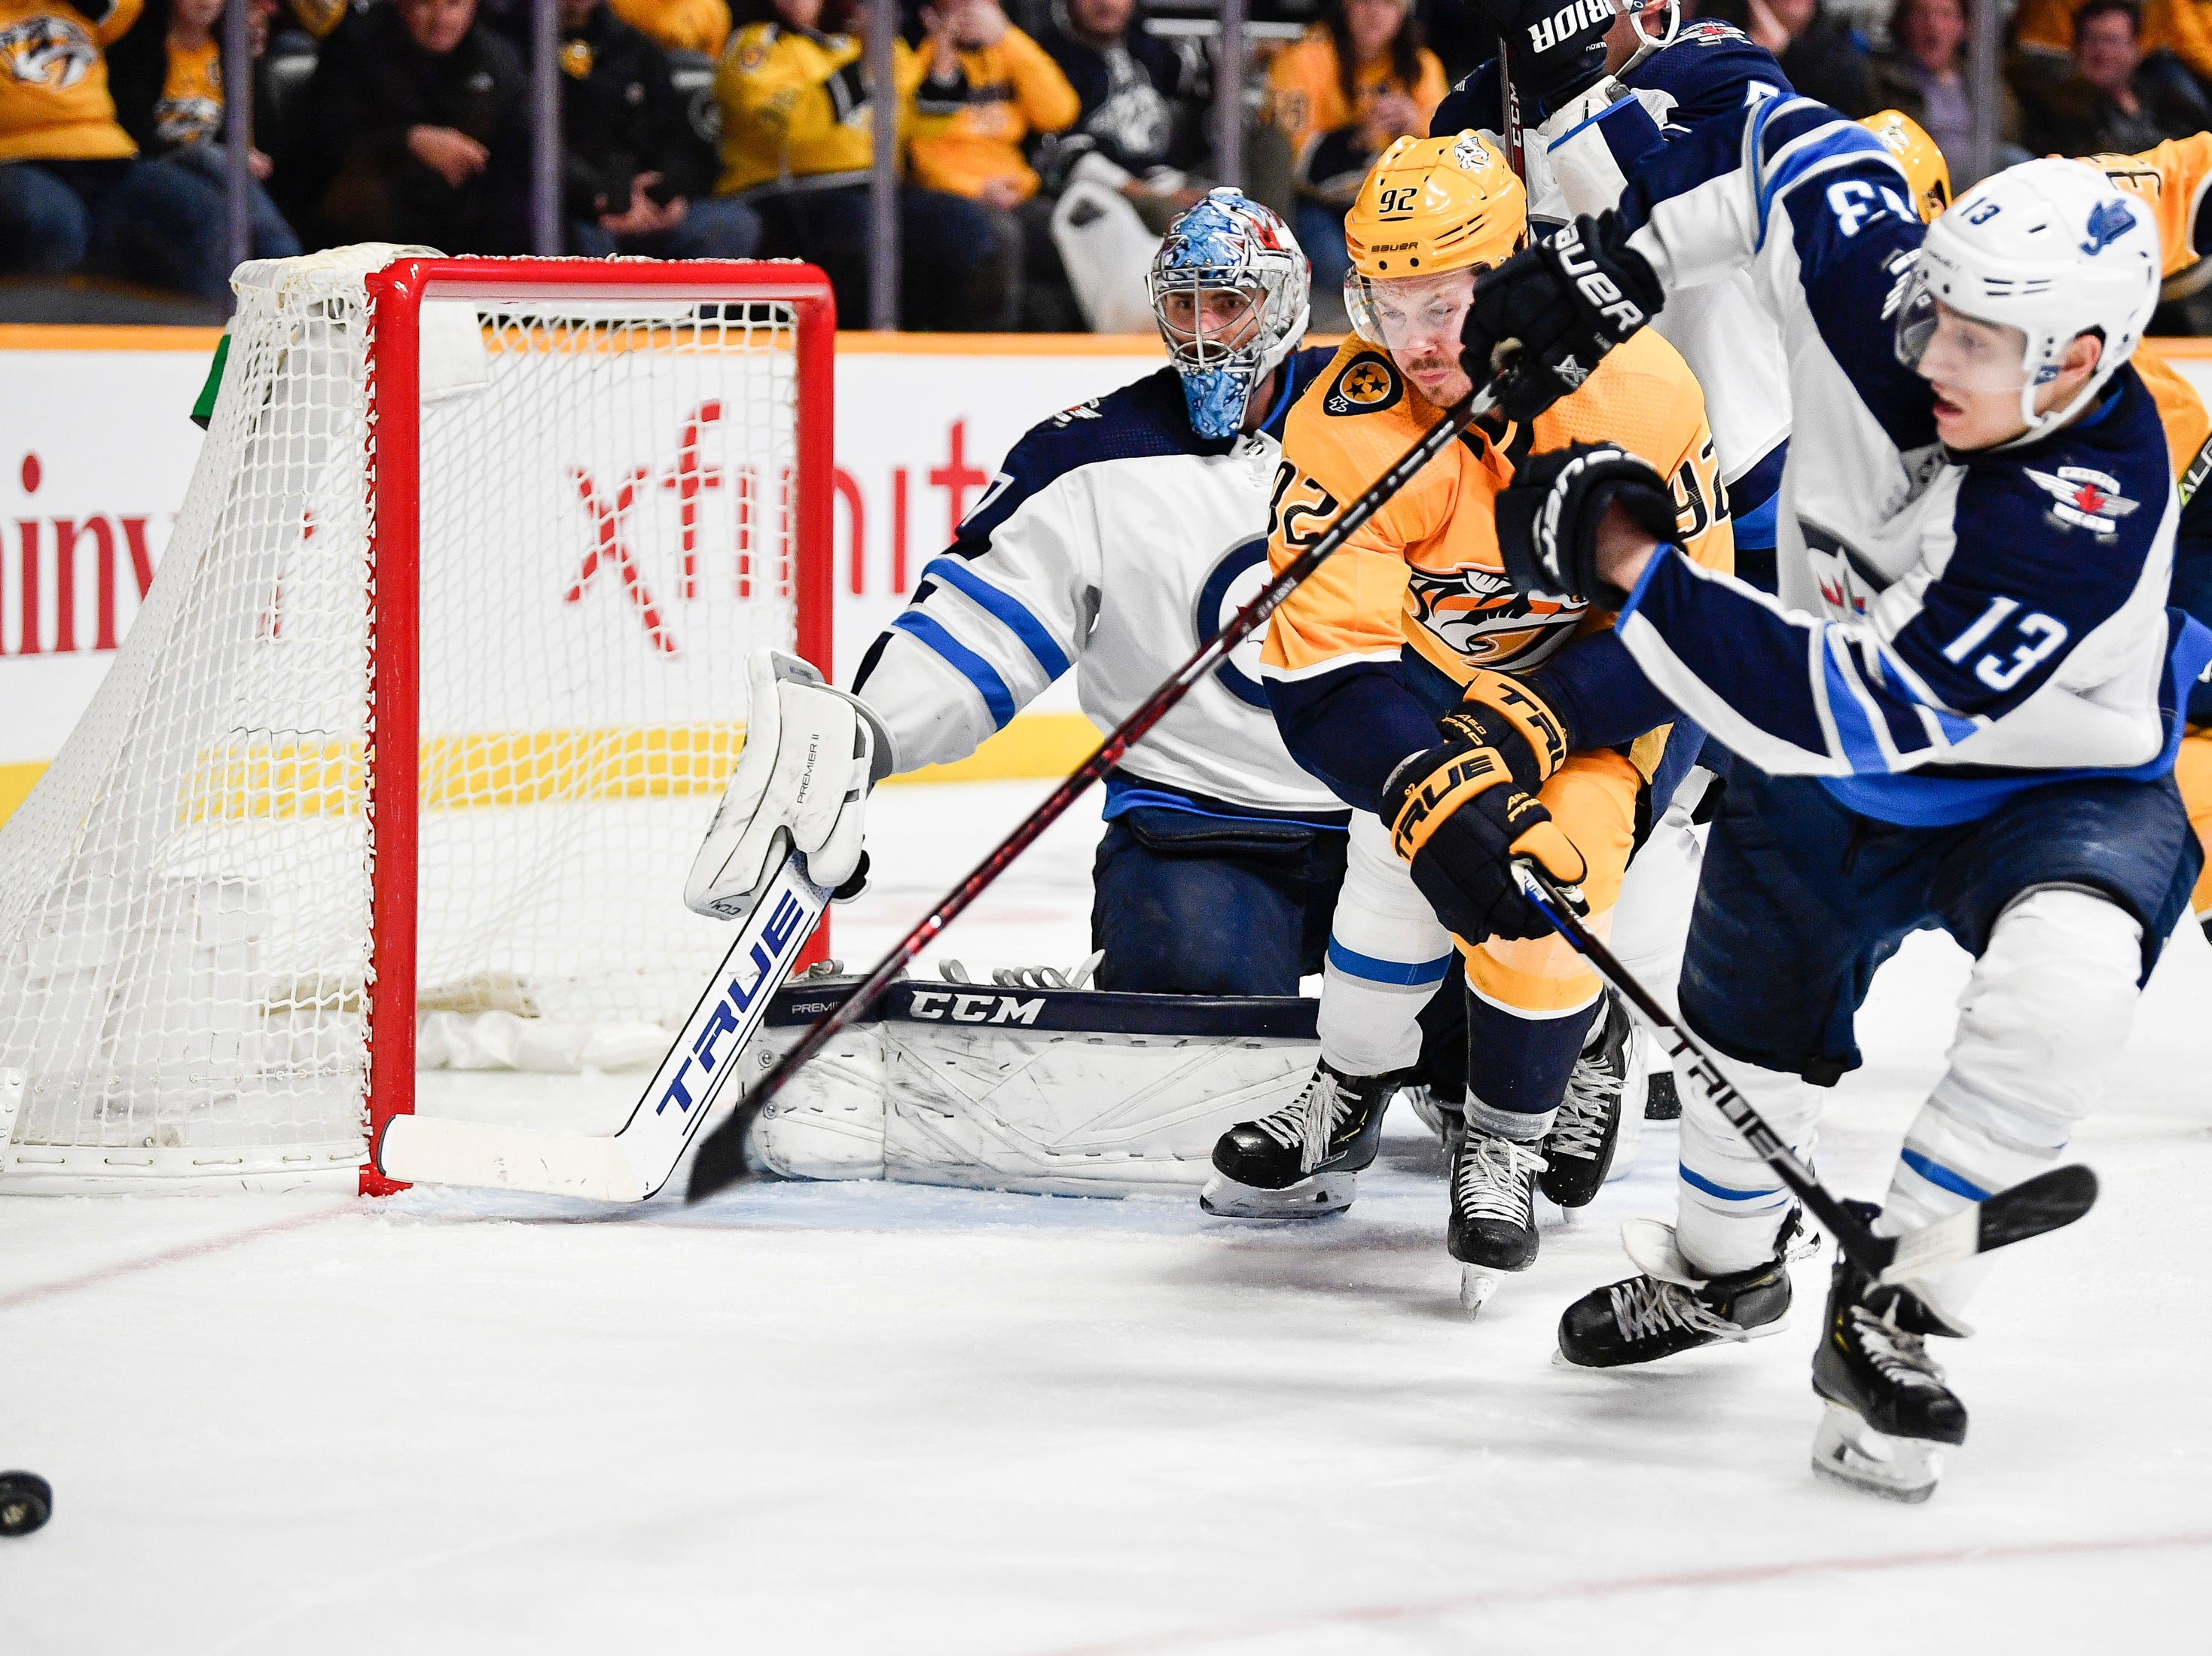 Nashville Predators center Ryan Johansen (92) fights for the puck with Winnipeg Jets left wing Brandon Tanev (13) during the third period at Bridgestone Arena in Nashville, Tenn., Thursday, Jan. 17, 2019.